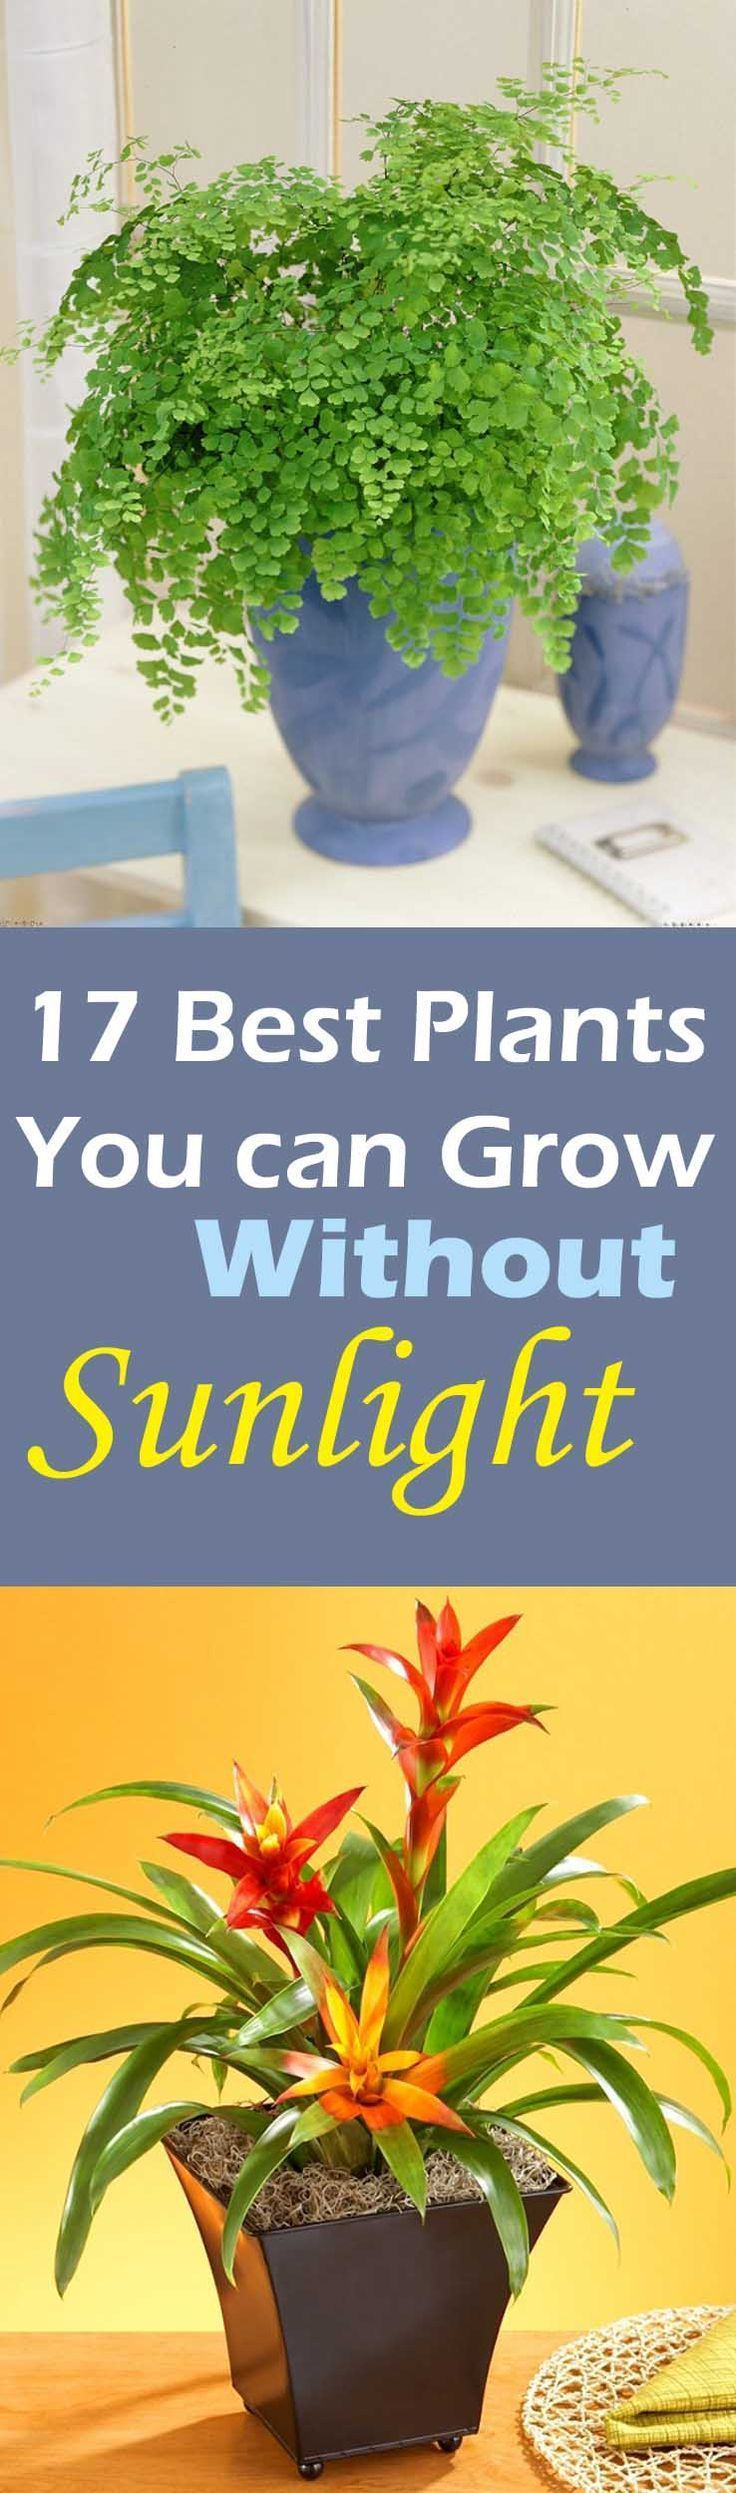 1000 ideas about low light plants on pinterest plants. Black Bedroom Furniture Sets. Home Design Ideas